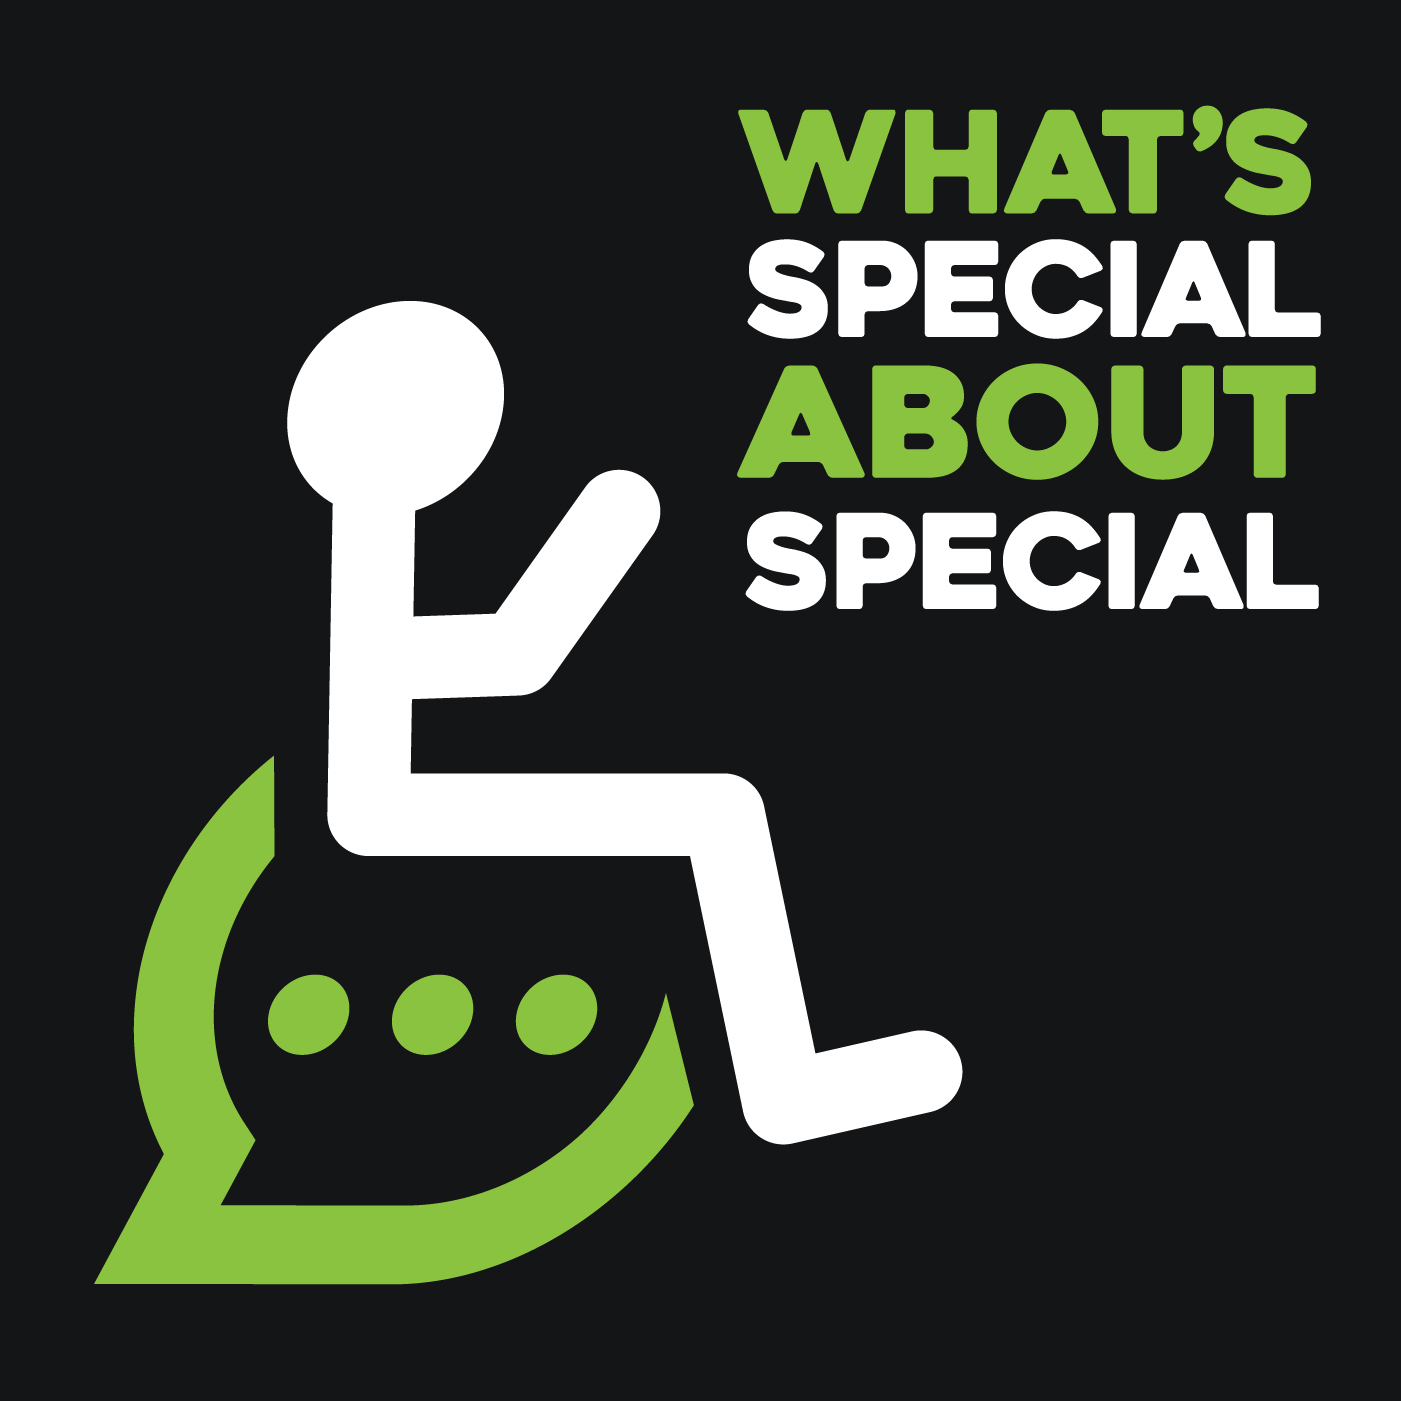 What's Special About Special Podcast Logo